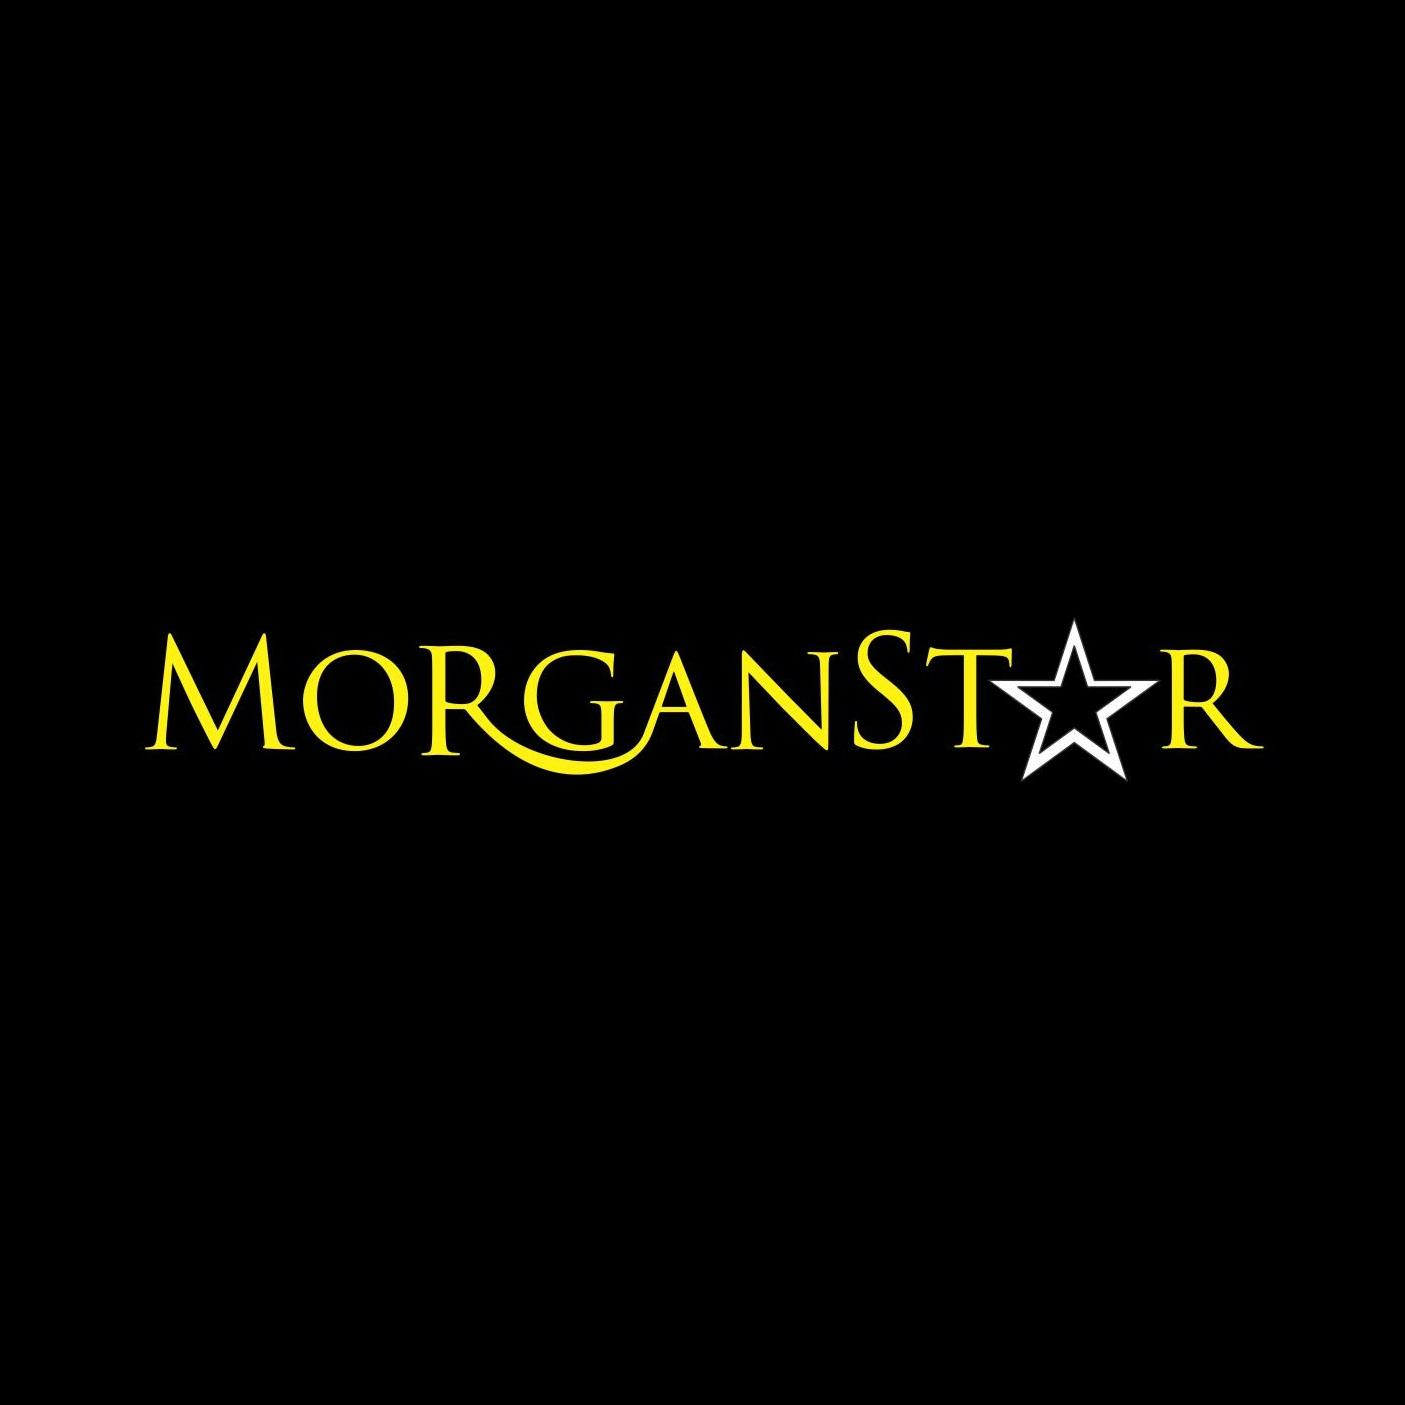 MorganStar Marketing Corporation